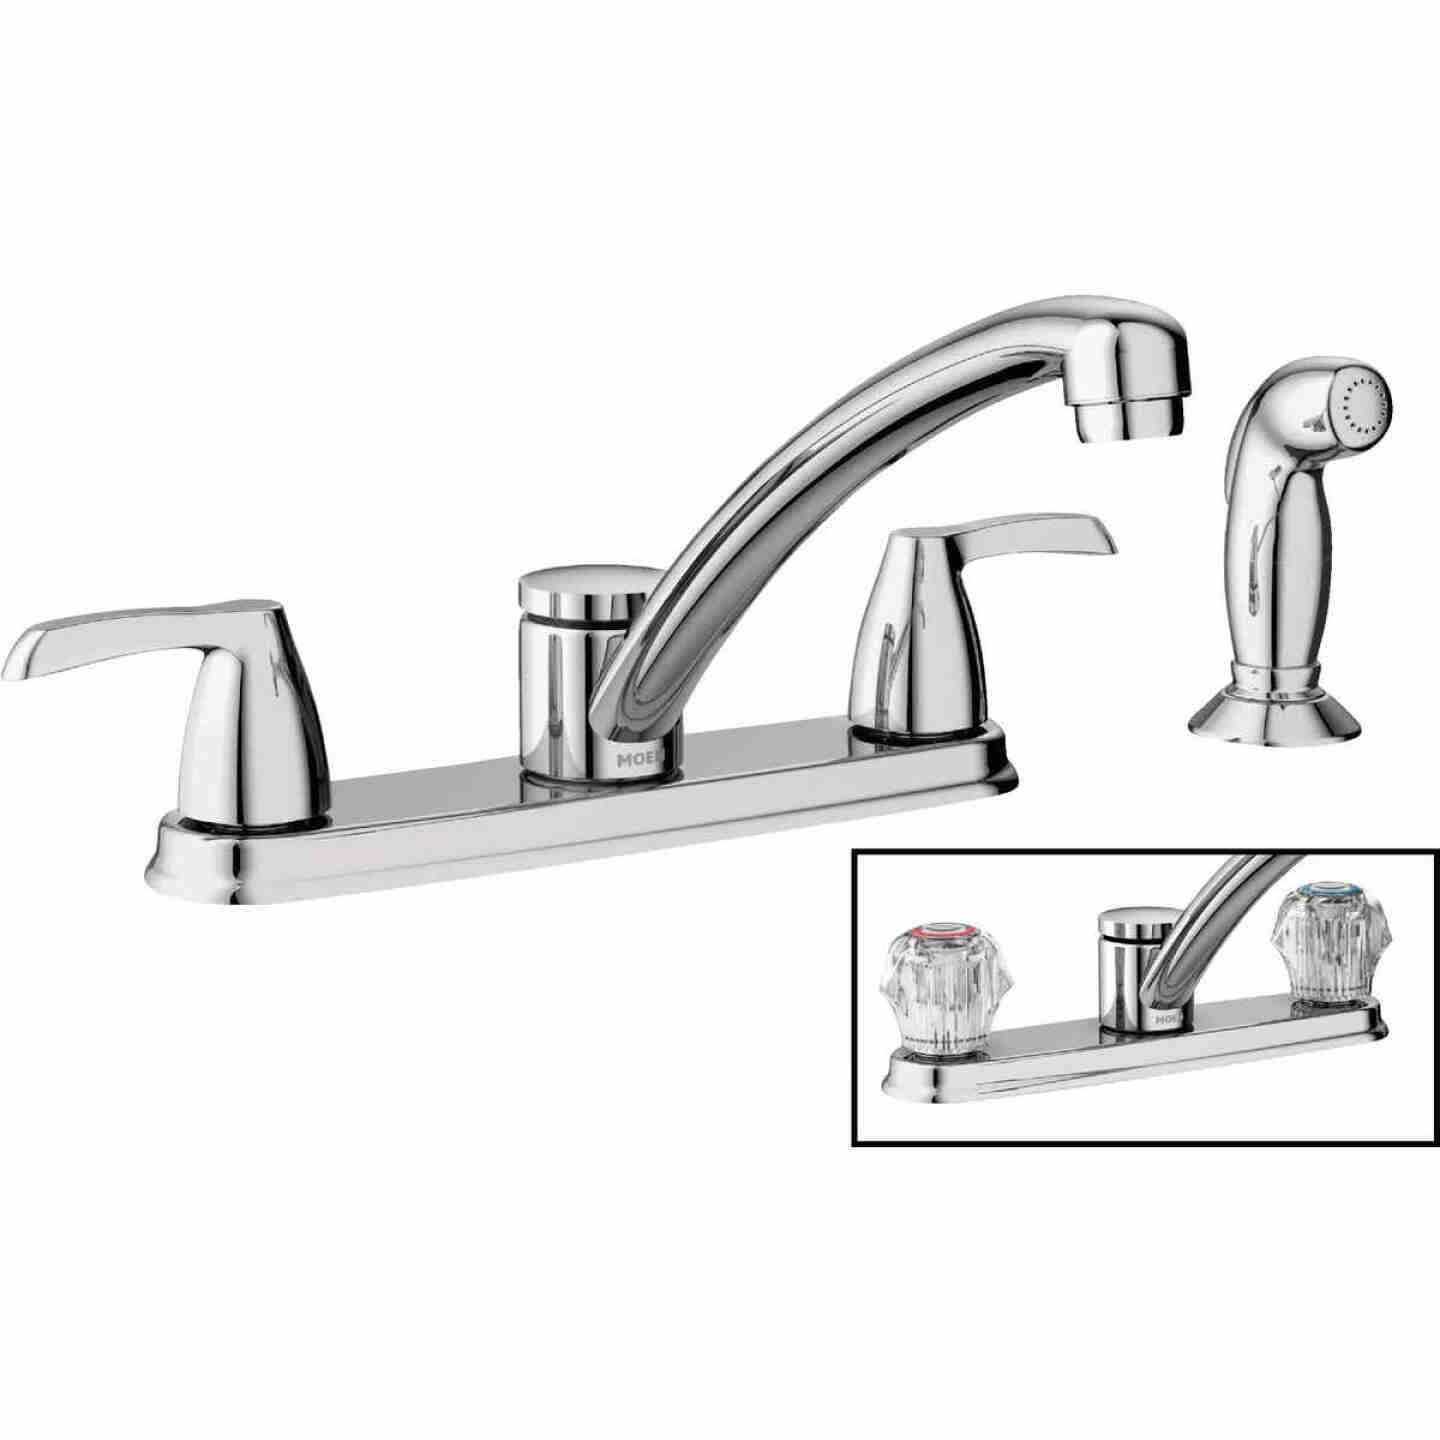 Moen Adler Dual Handle Lever Or Knob Kitchen Faucet With Side Spray Chrome Do It Best World S Largest Hardware Store